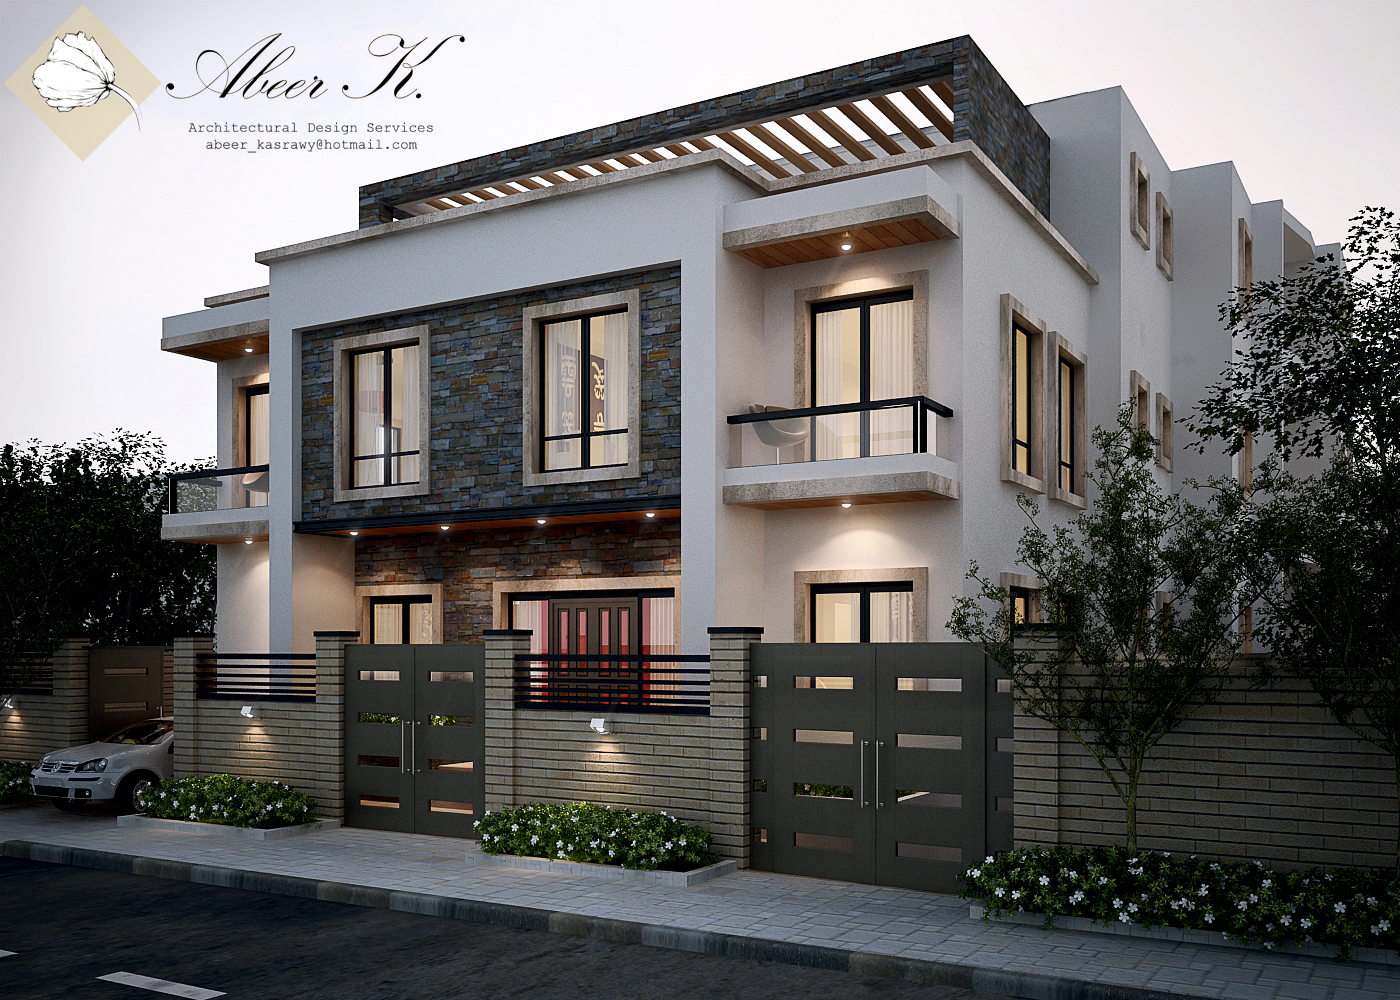 New cairo 39 s villa exterior by kasrawy on deviantart for Villas exterior design pictures